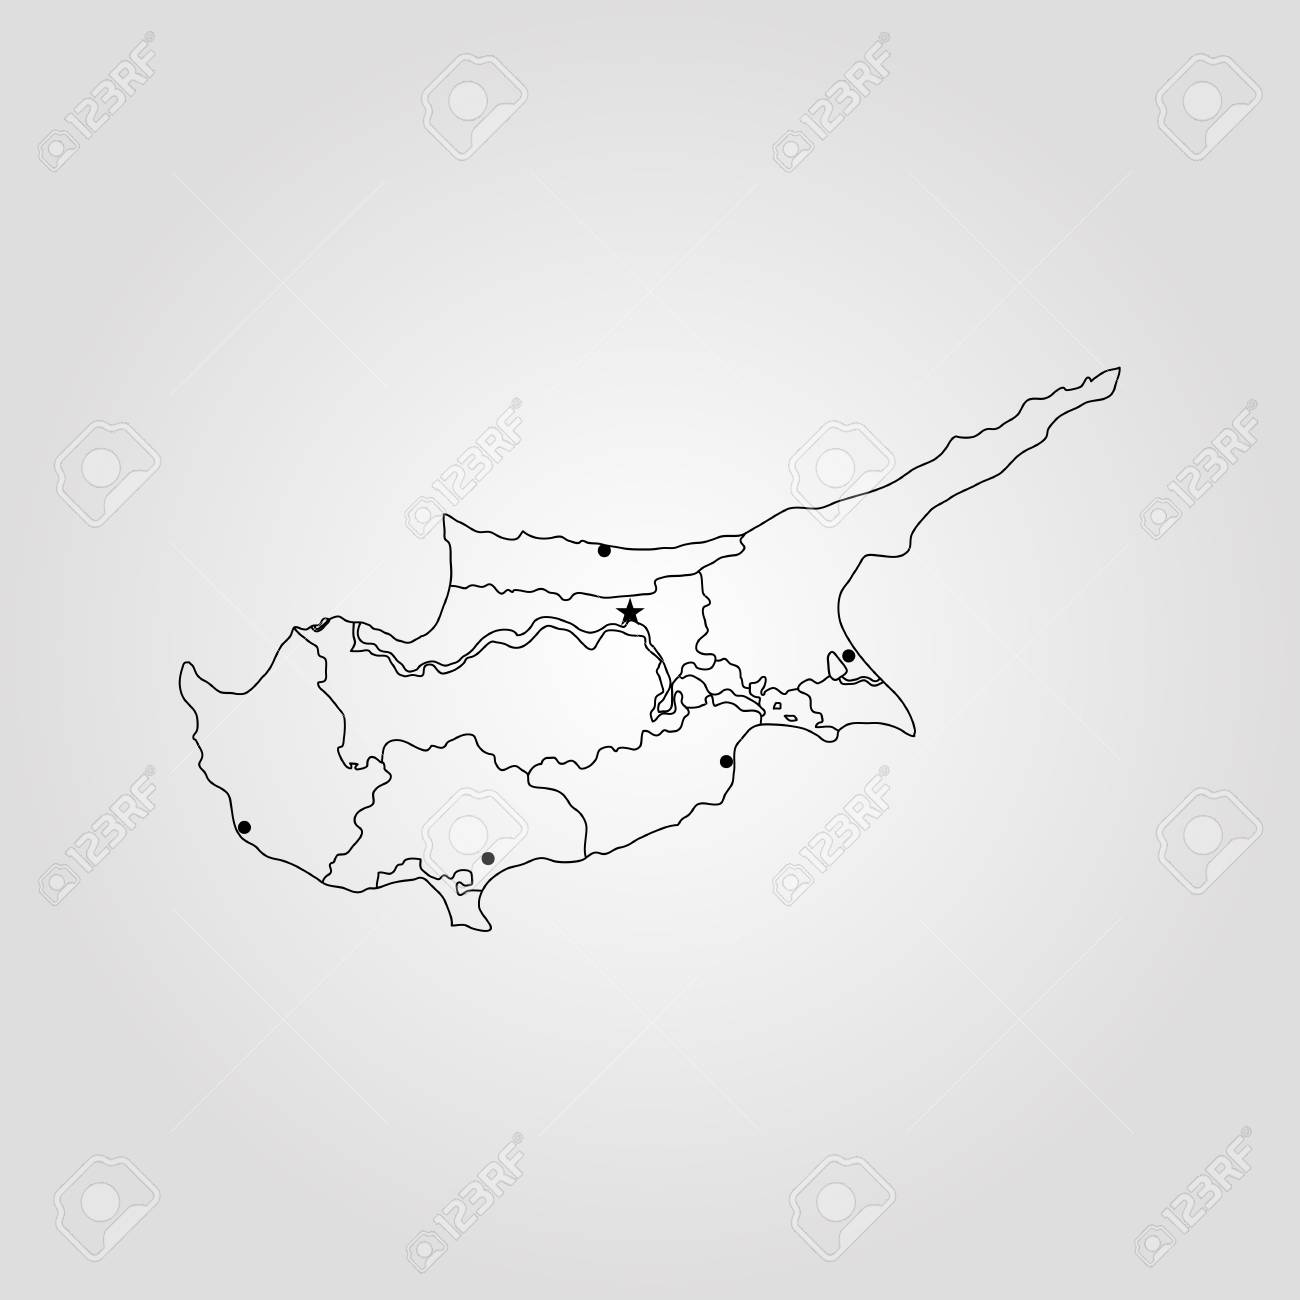 Map of cyprus vector illustration world map royalty free cliparts map of cyprus vector illustration world map stock vector 89750793 gumiabroncs Gallery